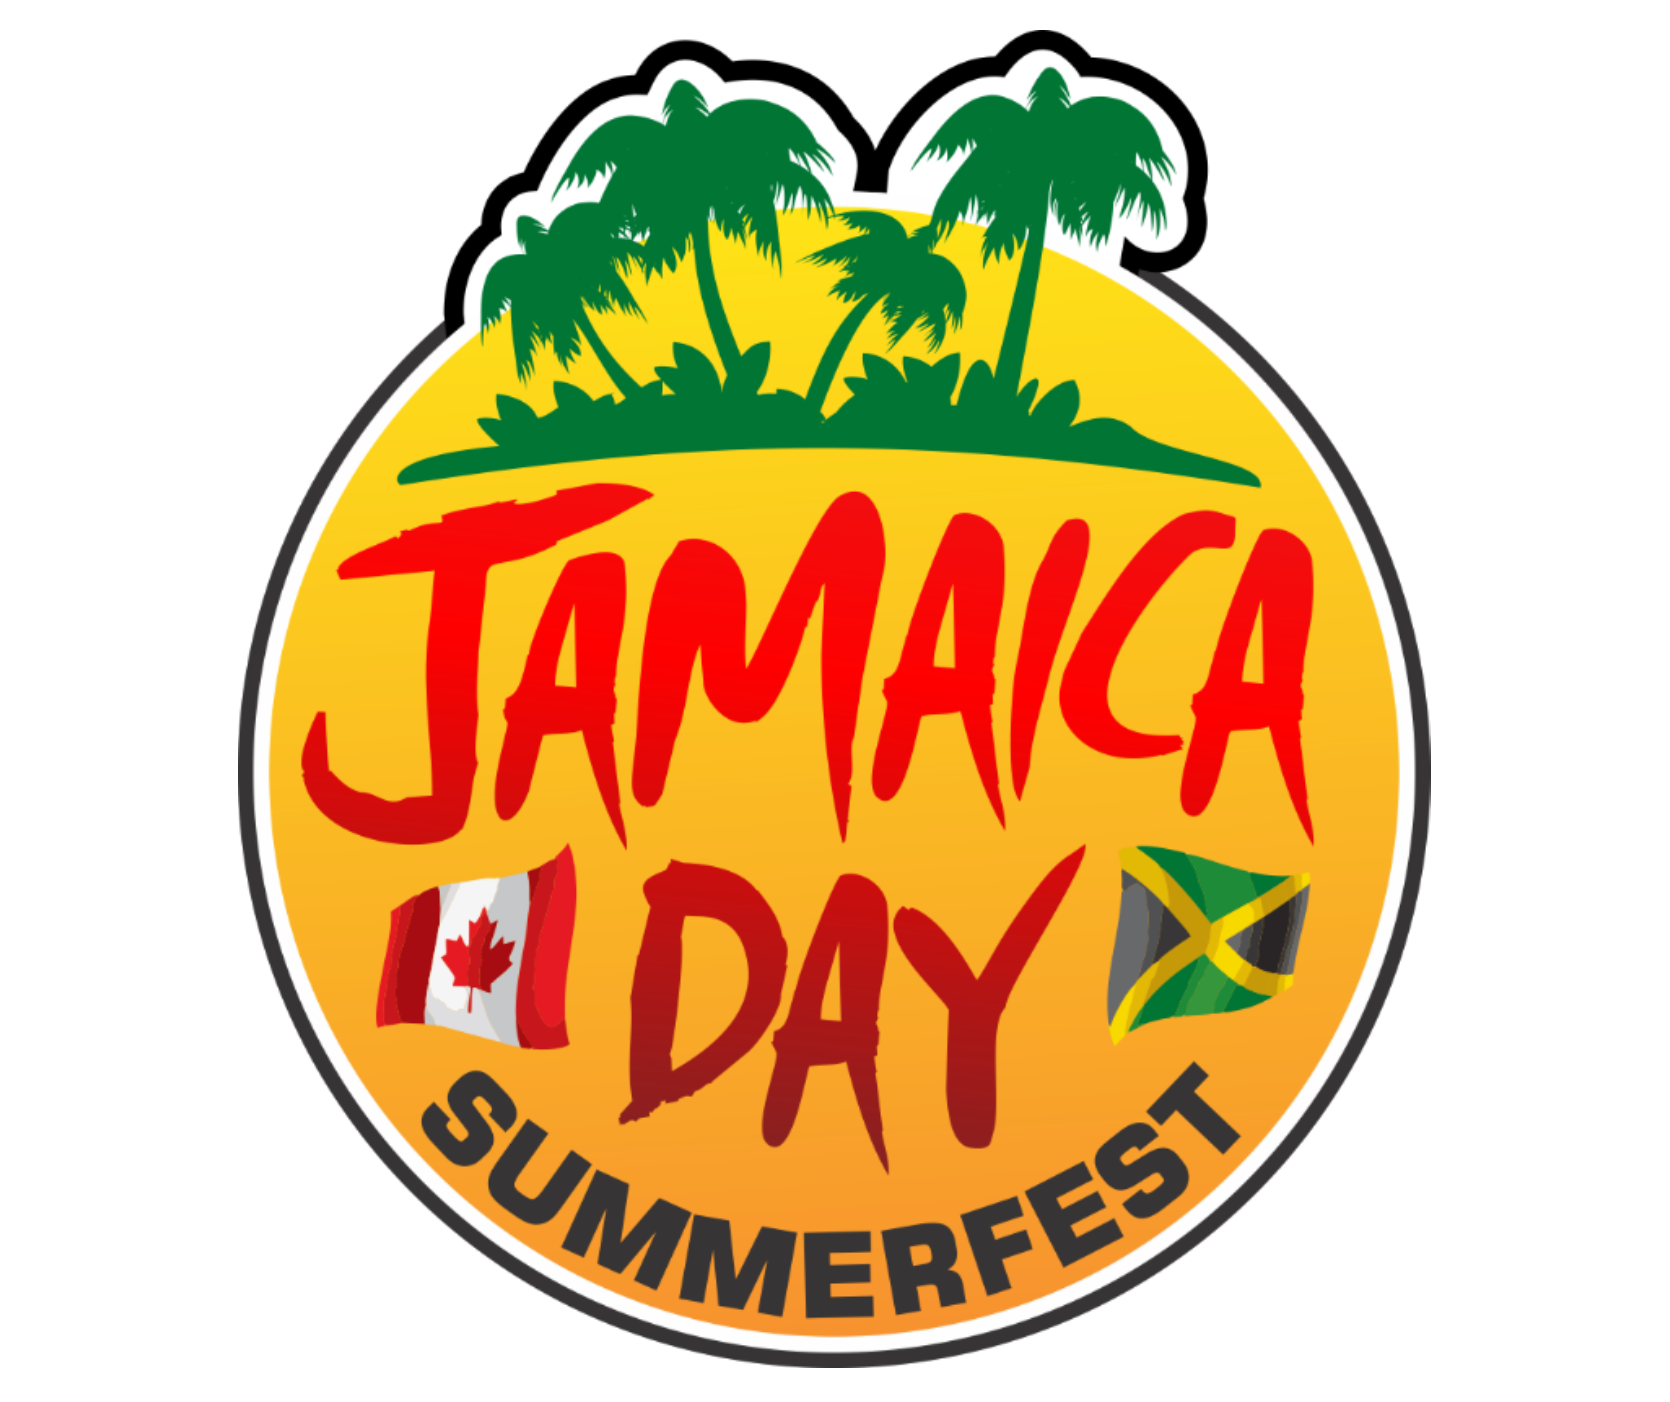 Tickets for Jamaica Day SummerFest in Etobicoke from ShowClix